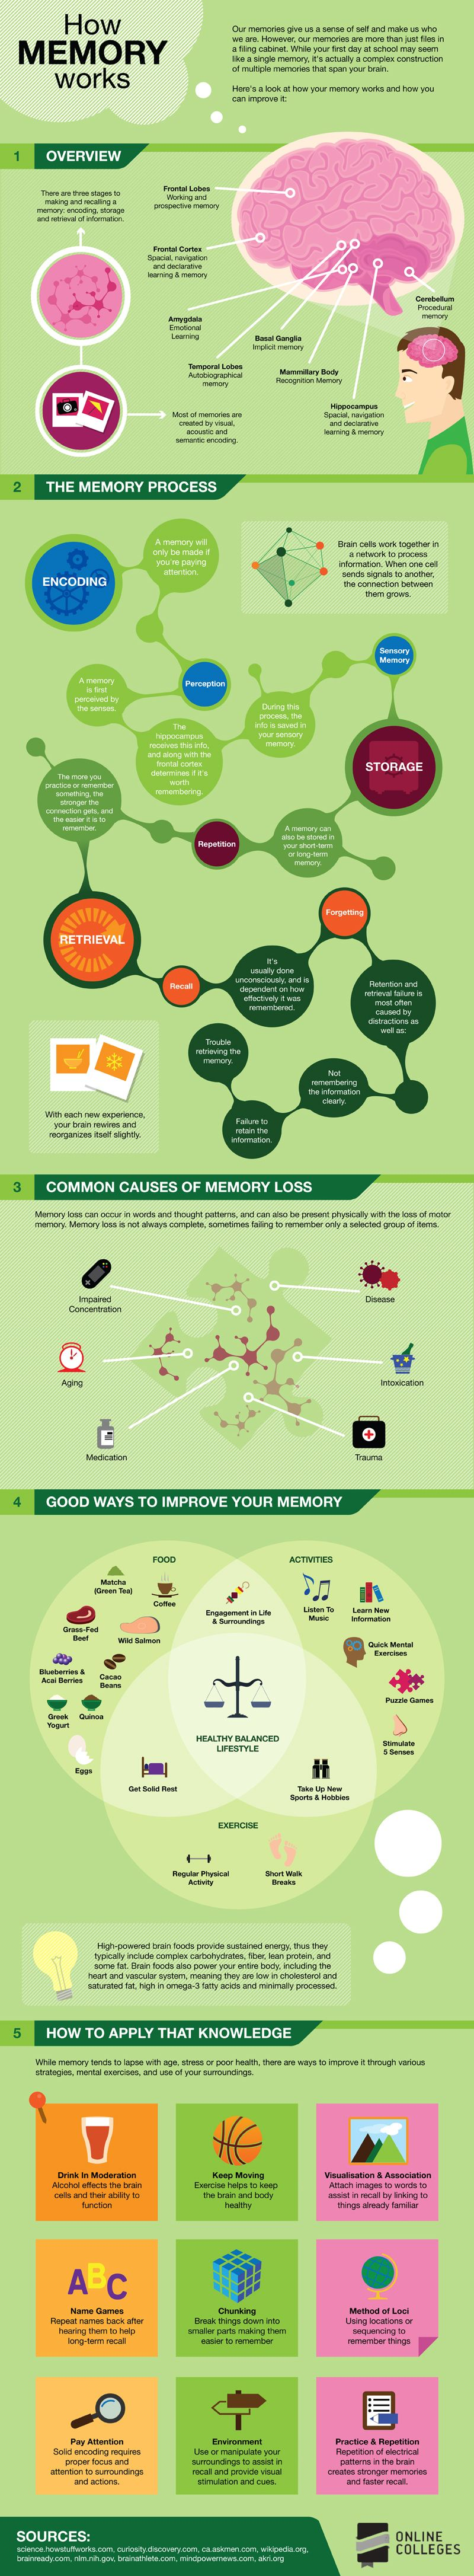 Infographic: How Memory Works | Elementary music, Memories and ...